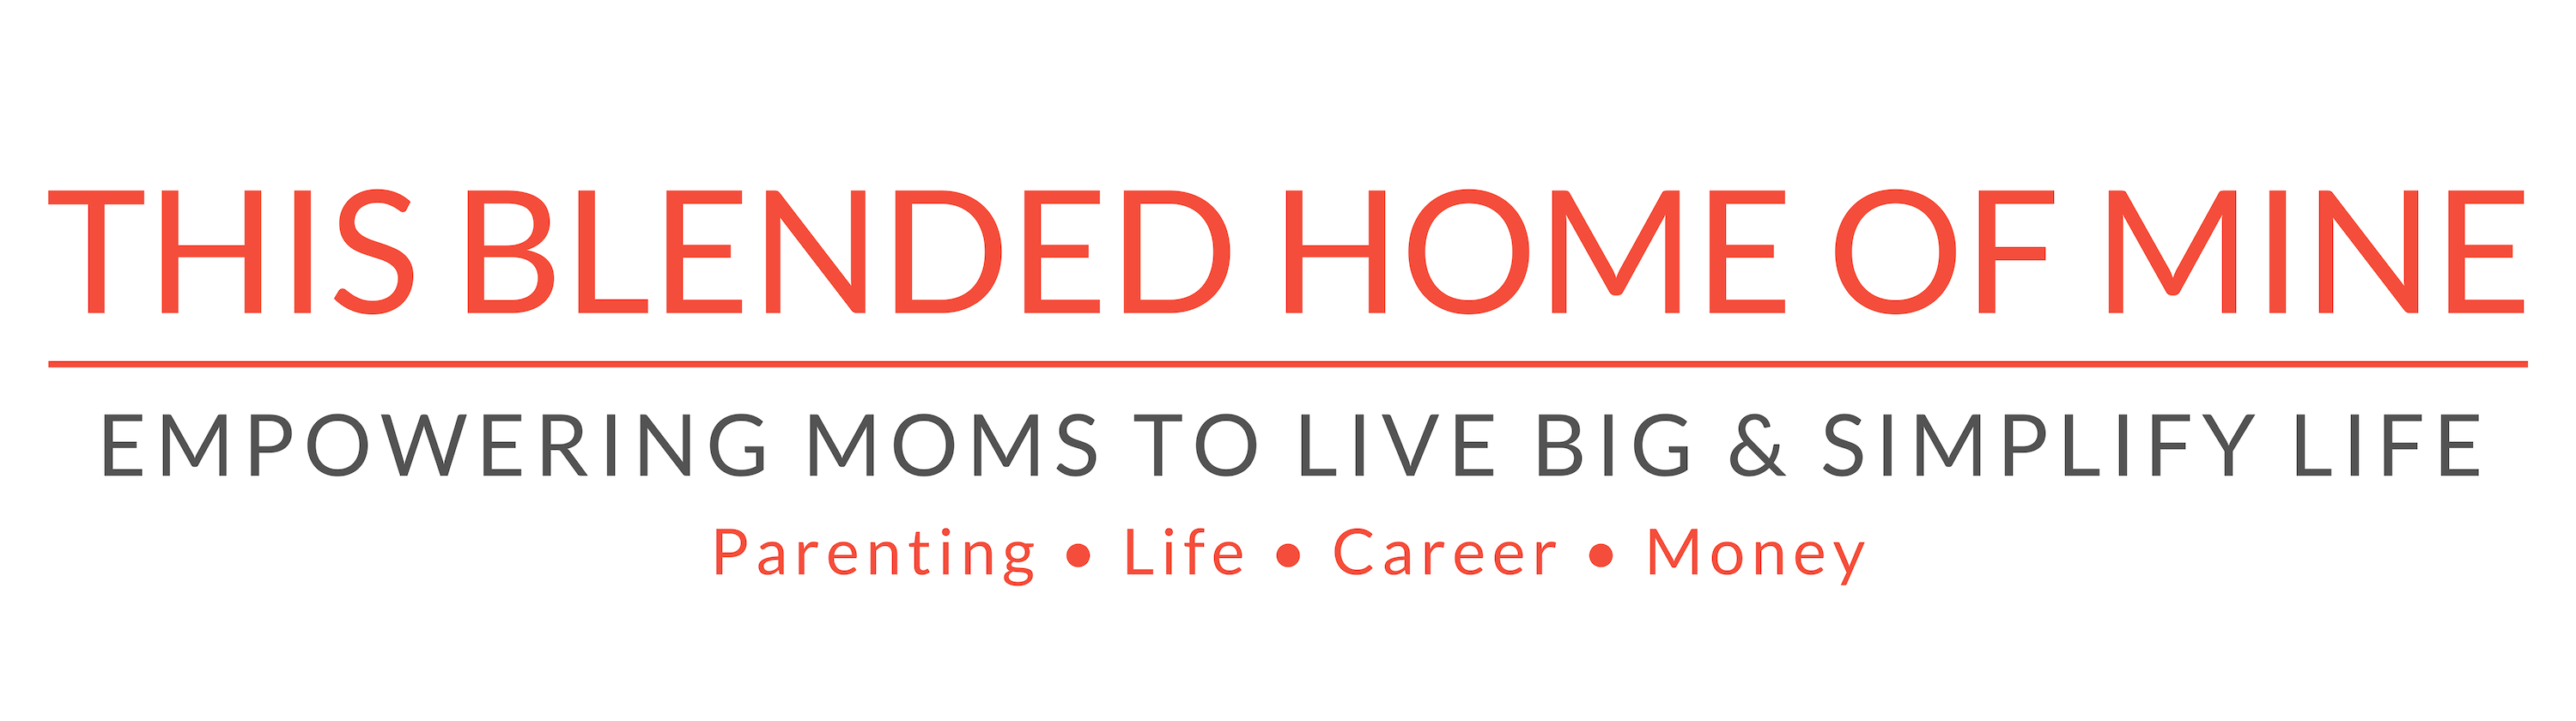 This Blended Home of Mine - Empowering Moms to Live Big | Parenting, Lifestyle, Career, Money